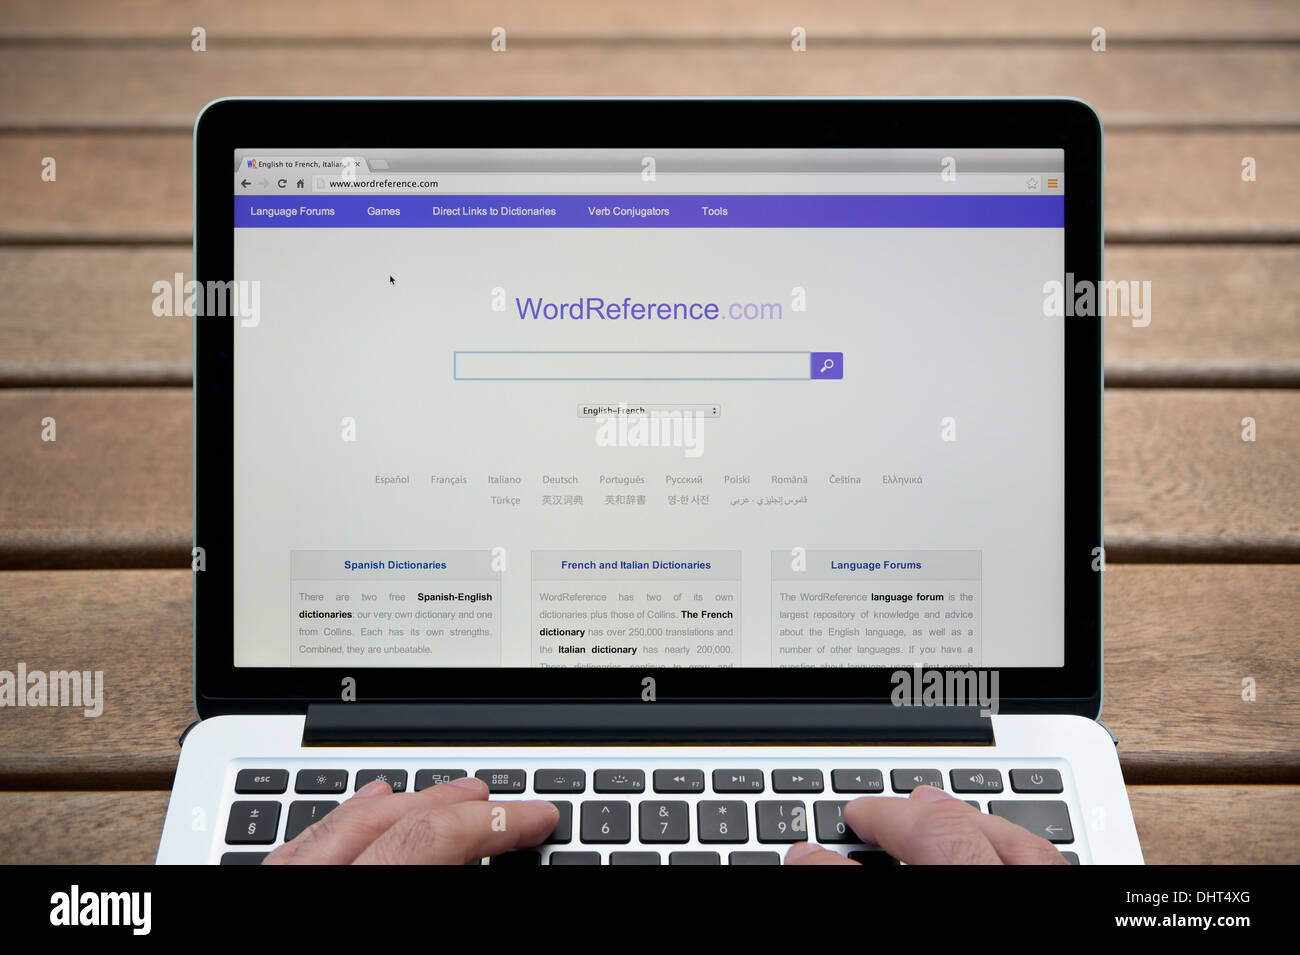 Reference Stock Photos & Reference Stock Images - Alamy